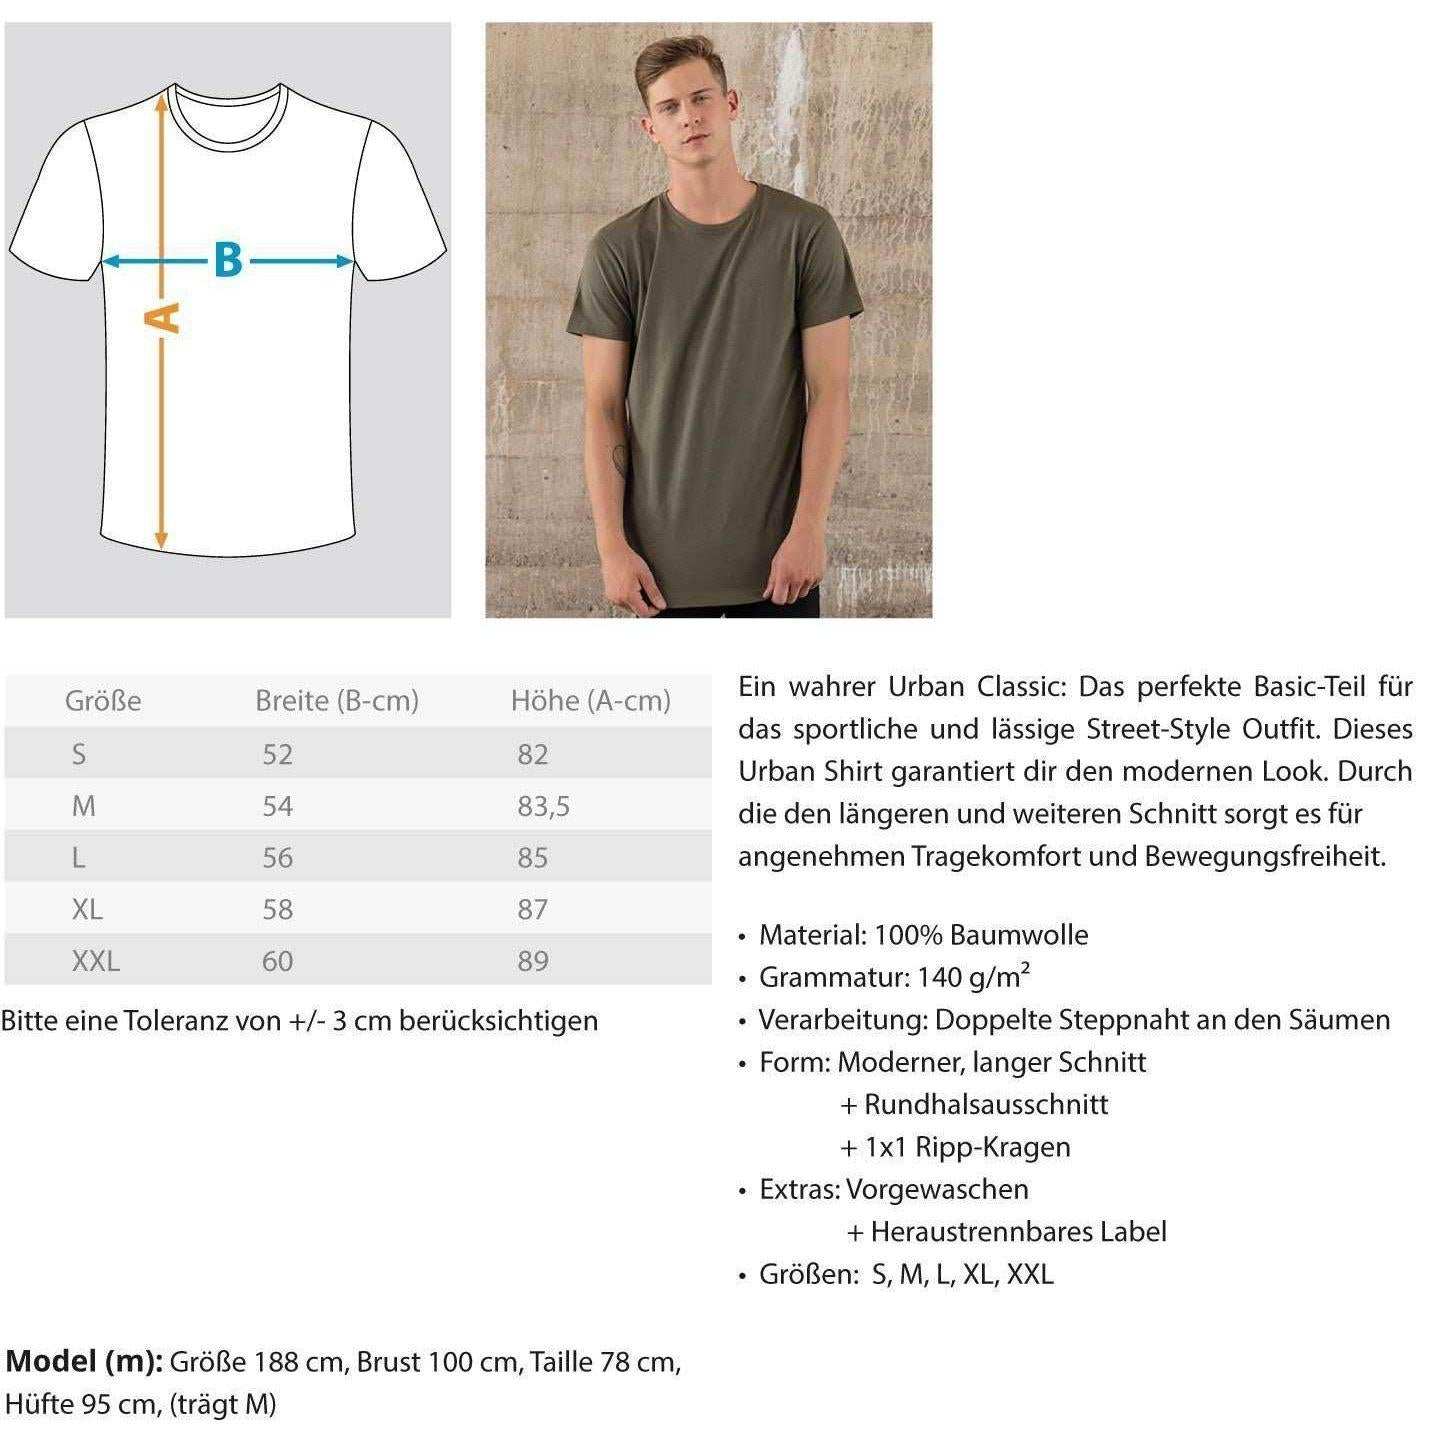 Rave is my cardio! Rave On!® Shirt - Men Long Tee Men Long Tee - Rave On!® the club & techno scene shop for cool young fashion streetwear style & fashion outfits + sexy festival 420 stuff